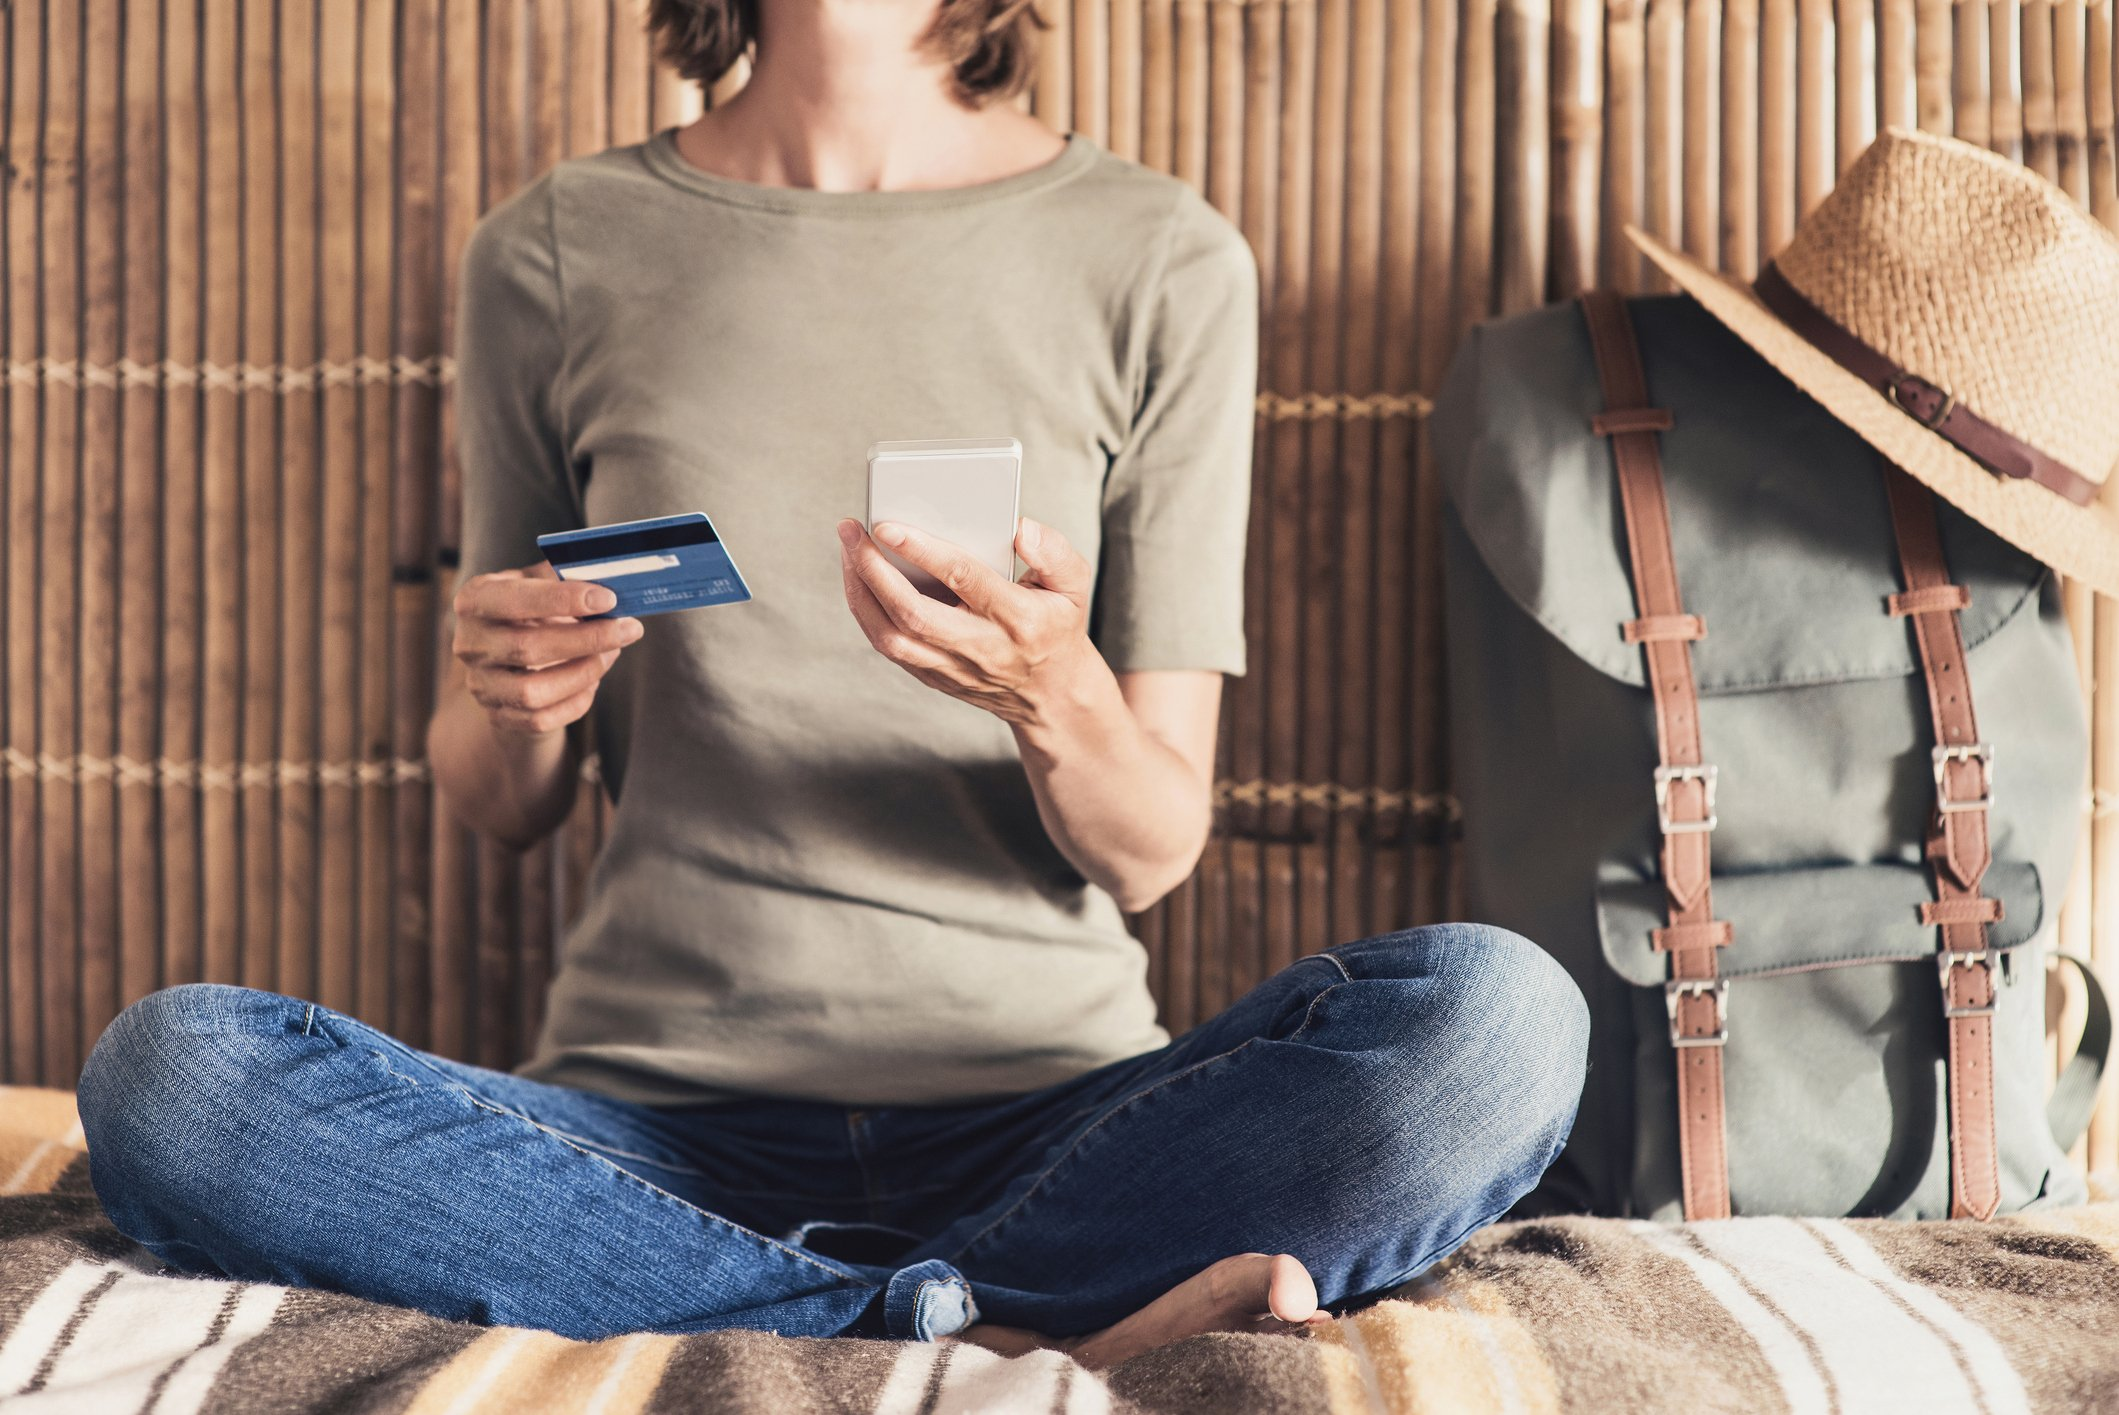 A woman sitting next to a backpack holding a credit card.